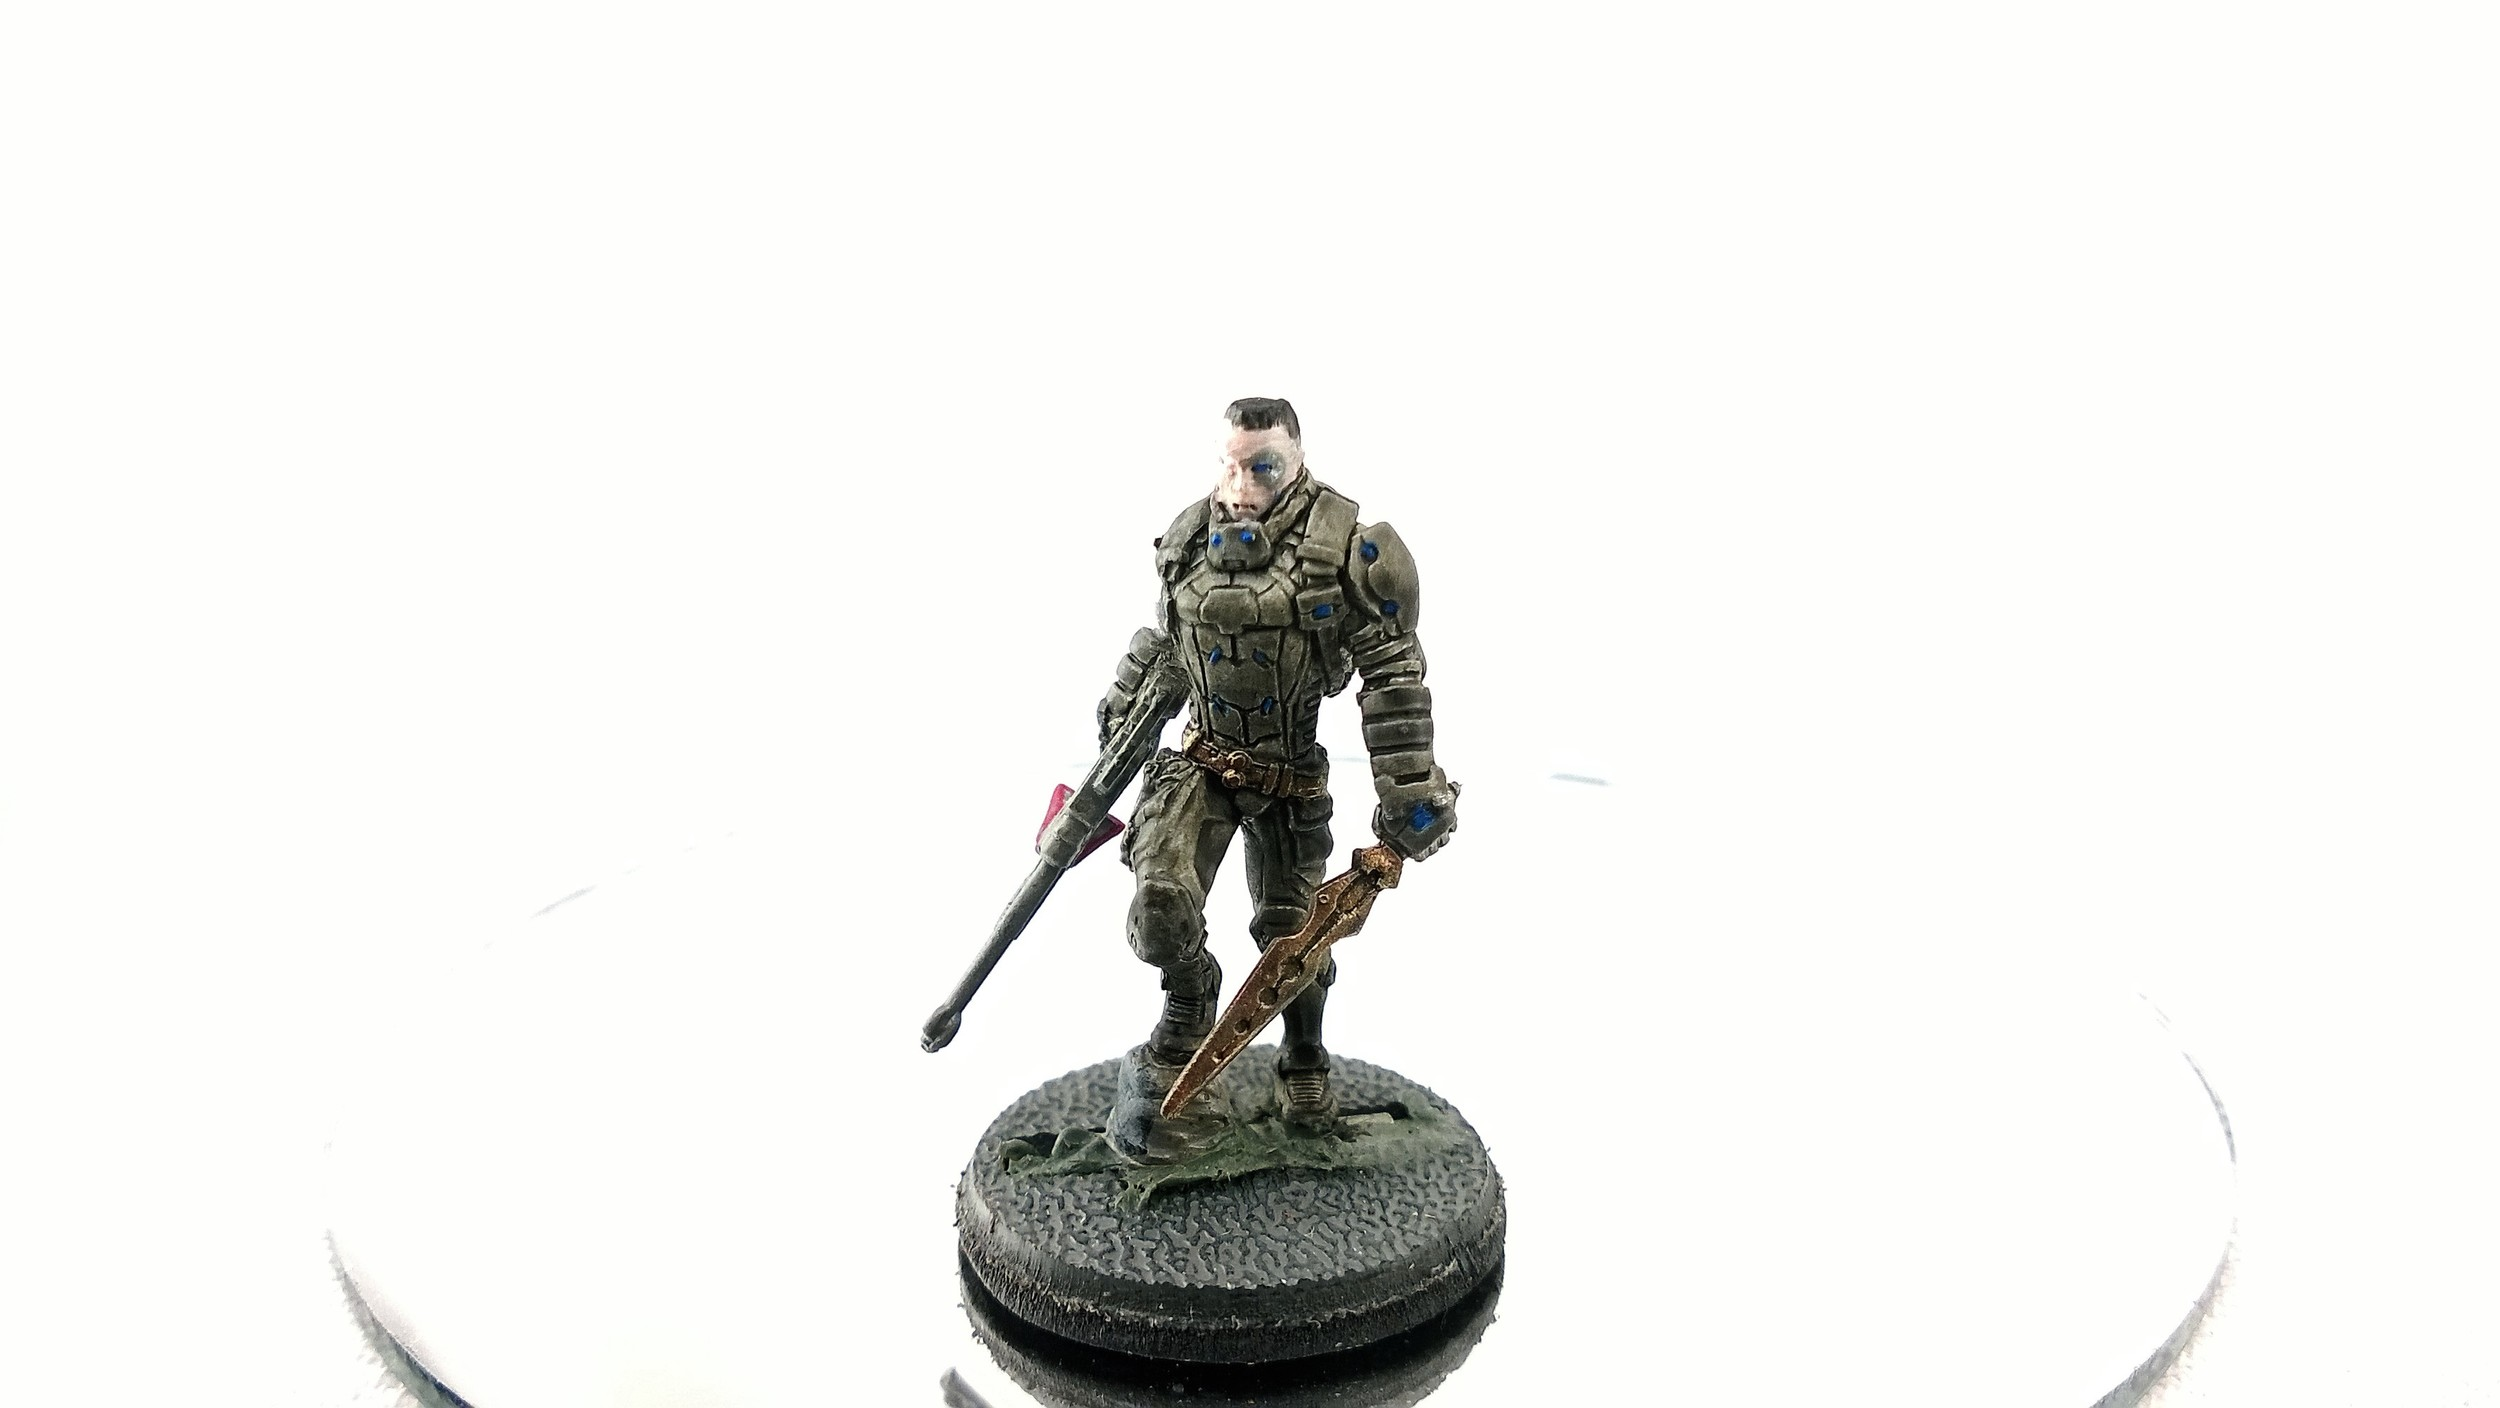 Eudoras, Myrmidon Officer